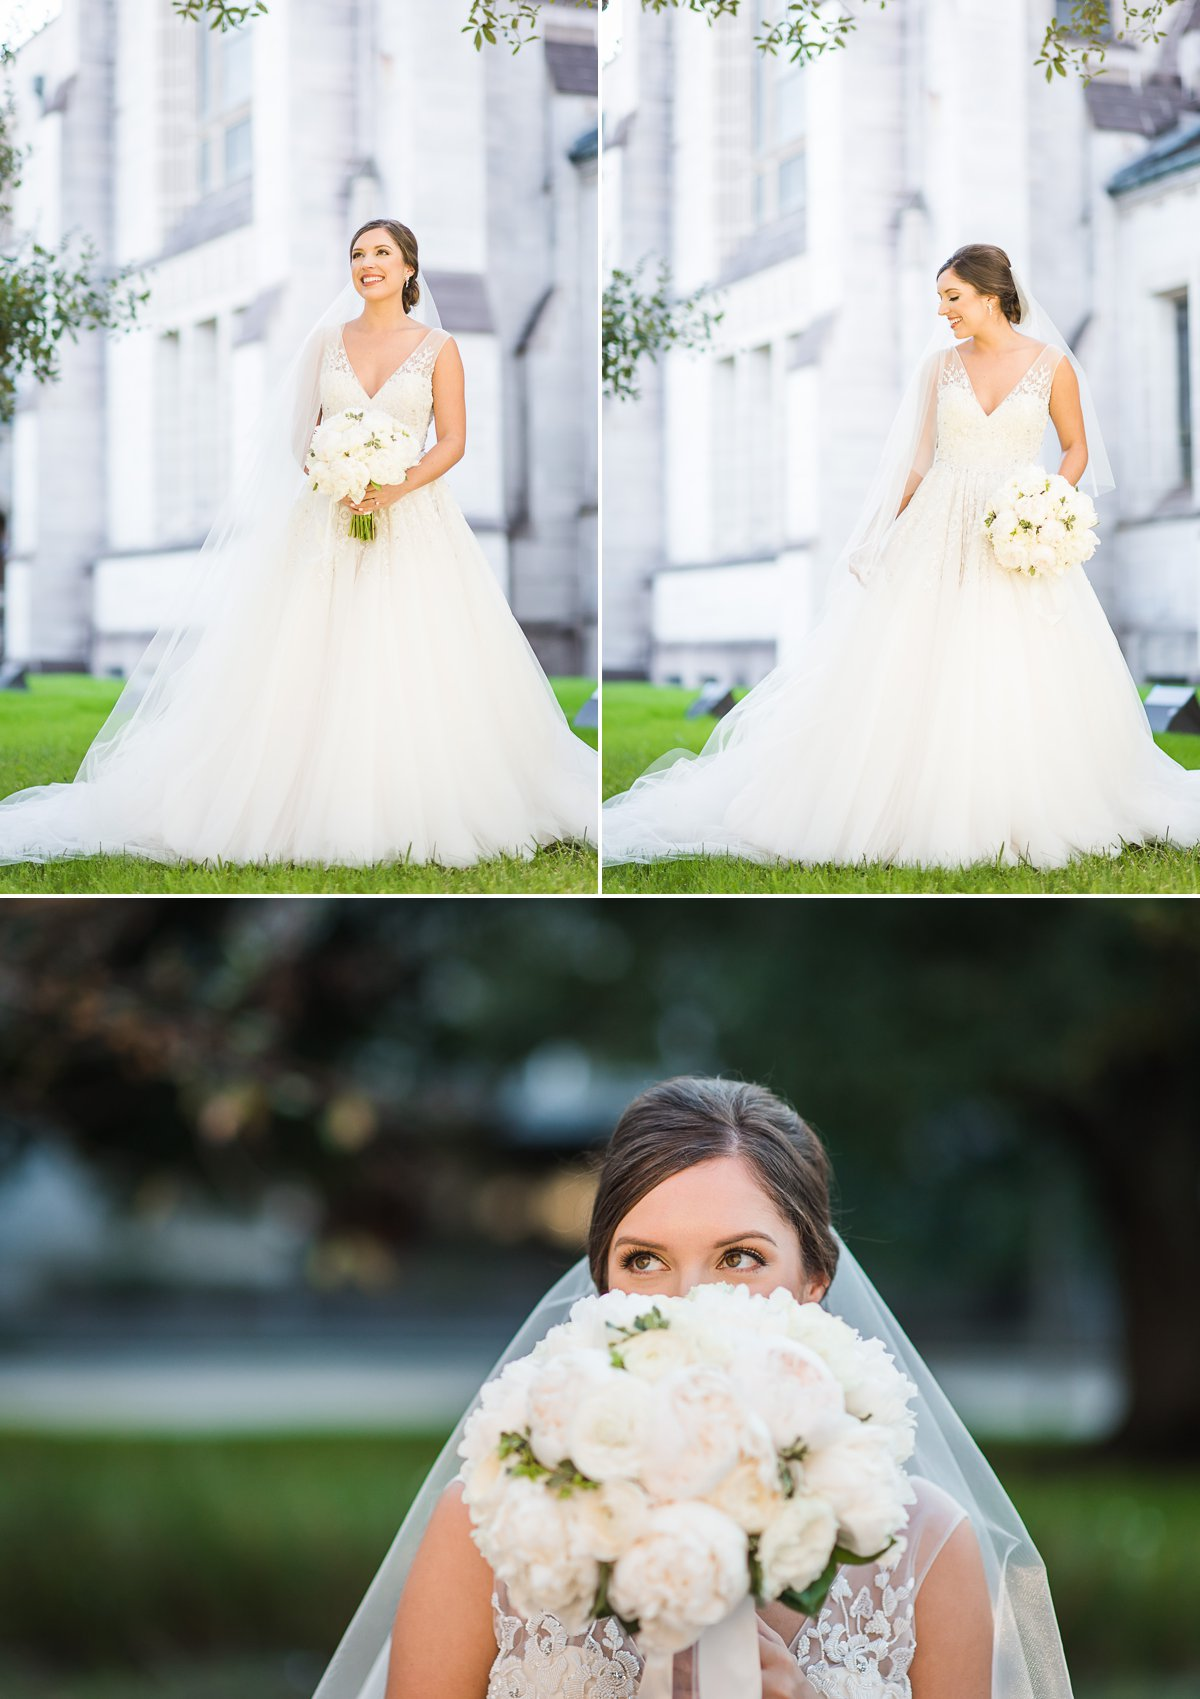 Houston Bridal Photos at St. Lakes United Methodist Church